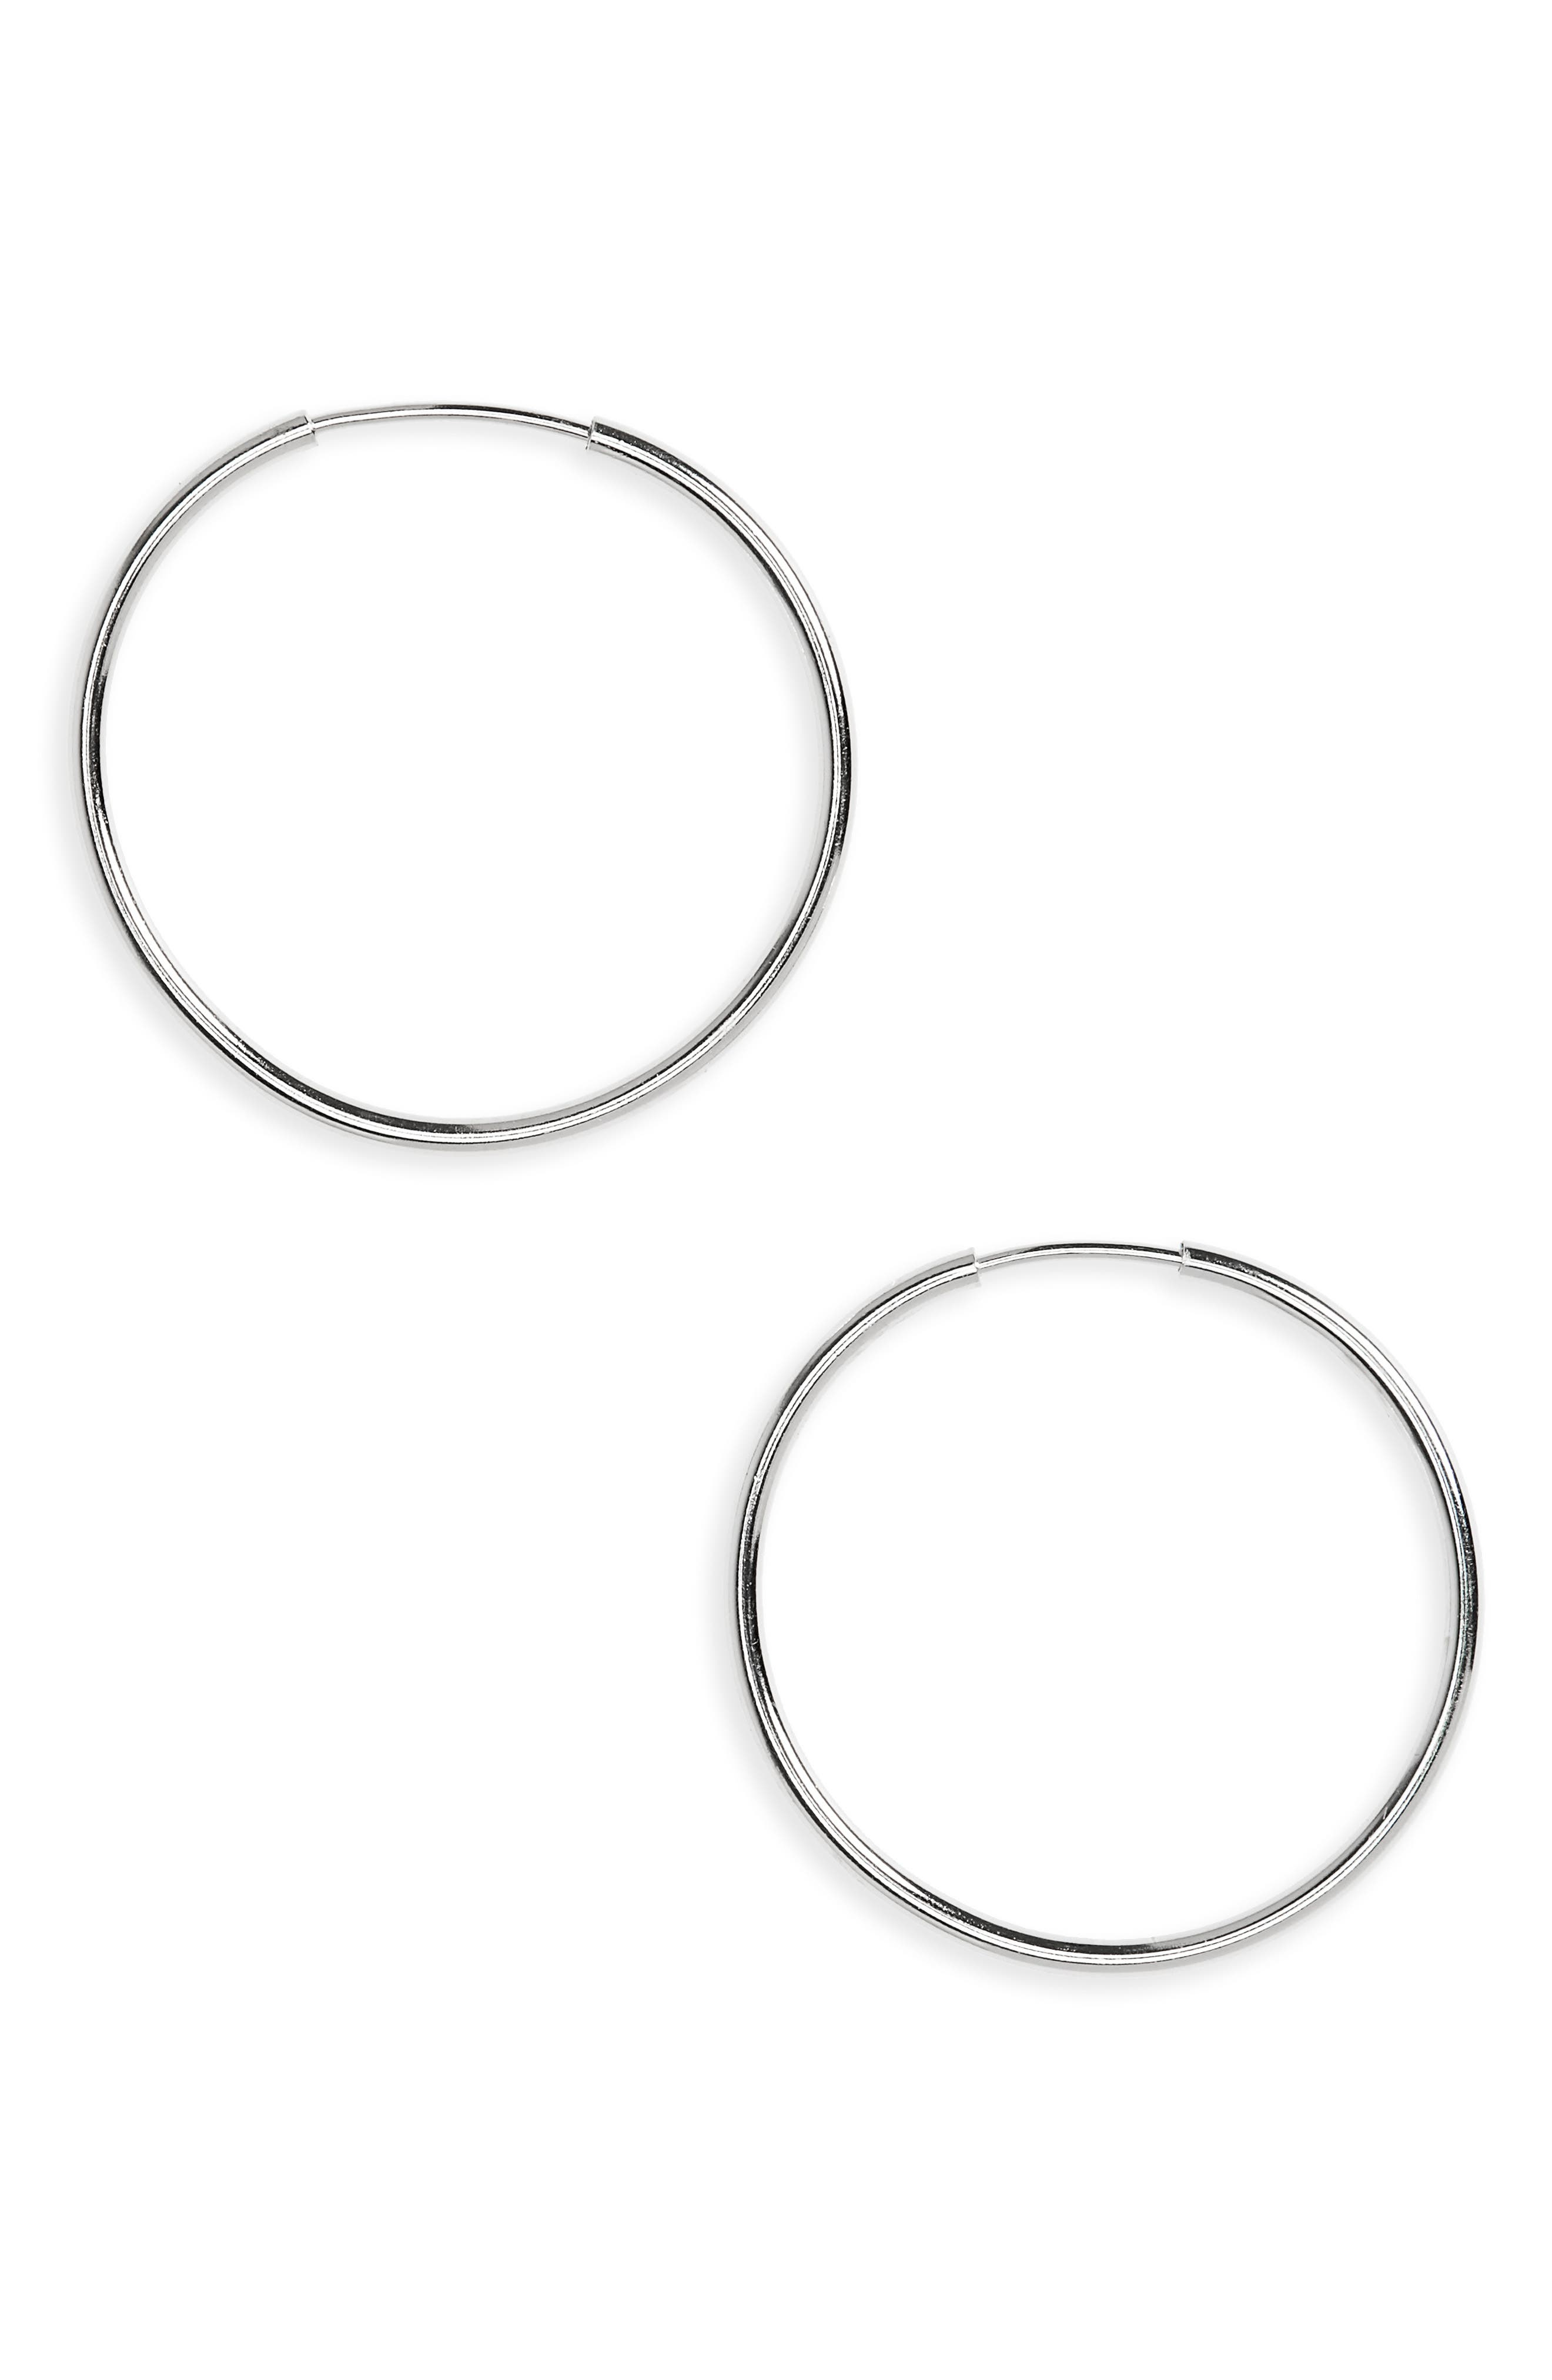 ARGENTO VIVO, Endless Hoop Earrings, Main thumbnail 1, color, SILVER